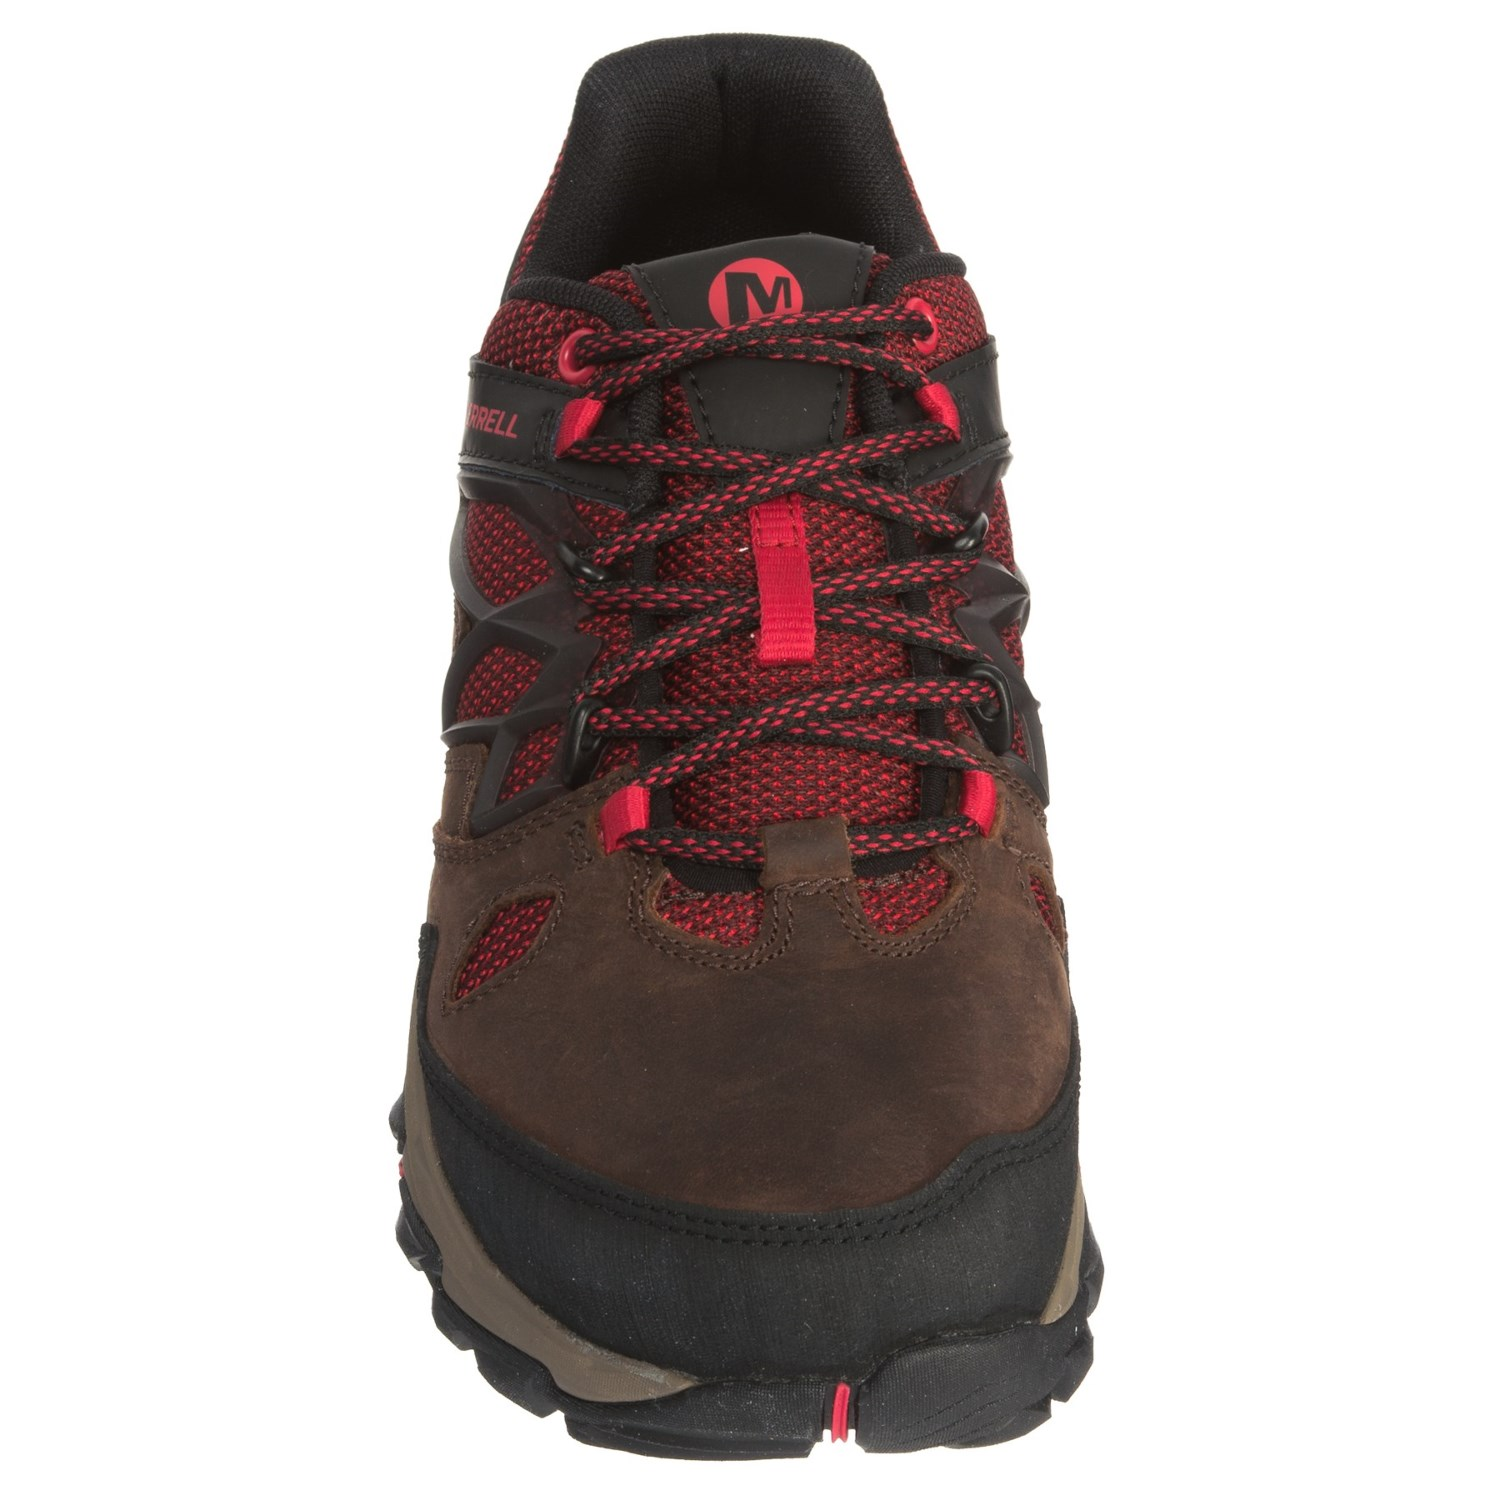 d94c806d4738 Merrell All Out Blaze 2 Hiking Shoes (For Women) - Save 77%